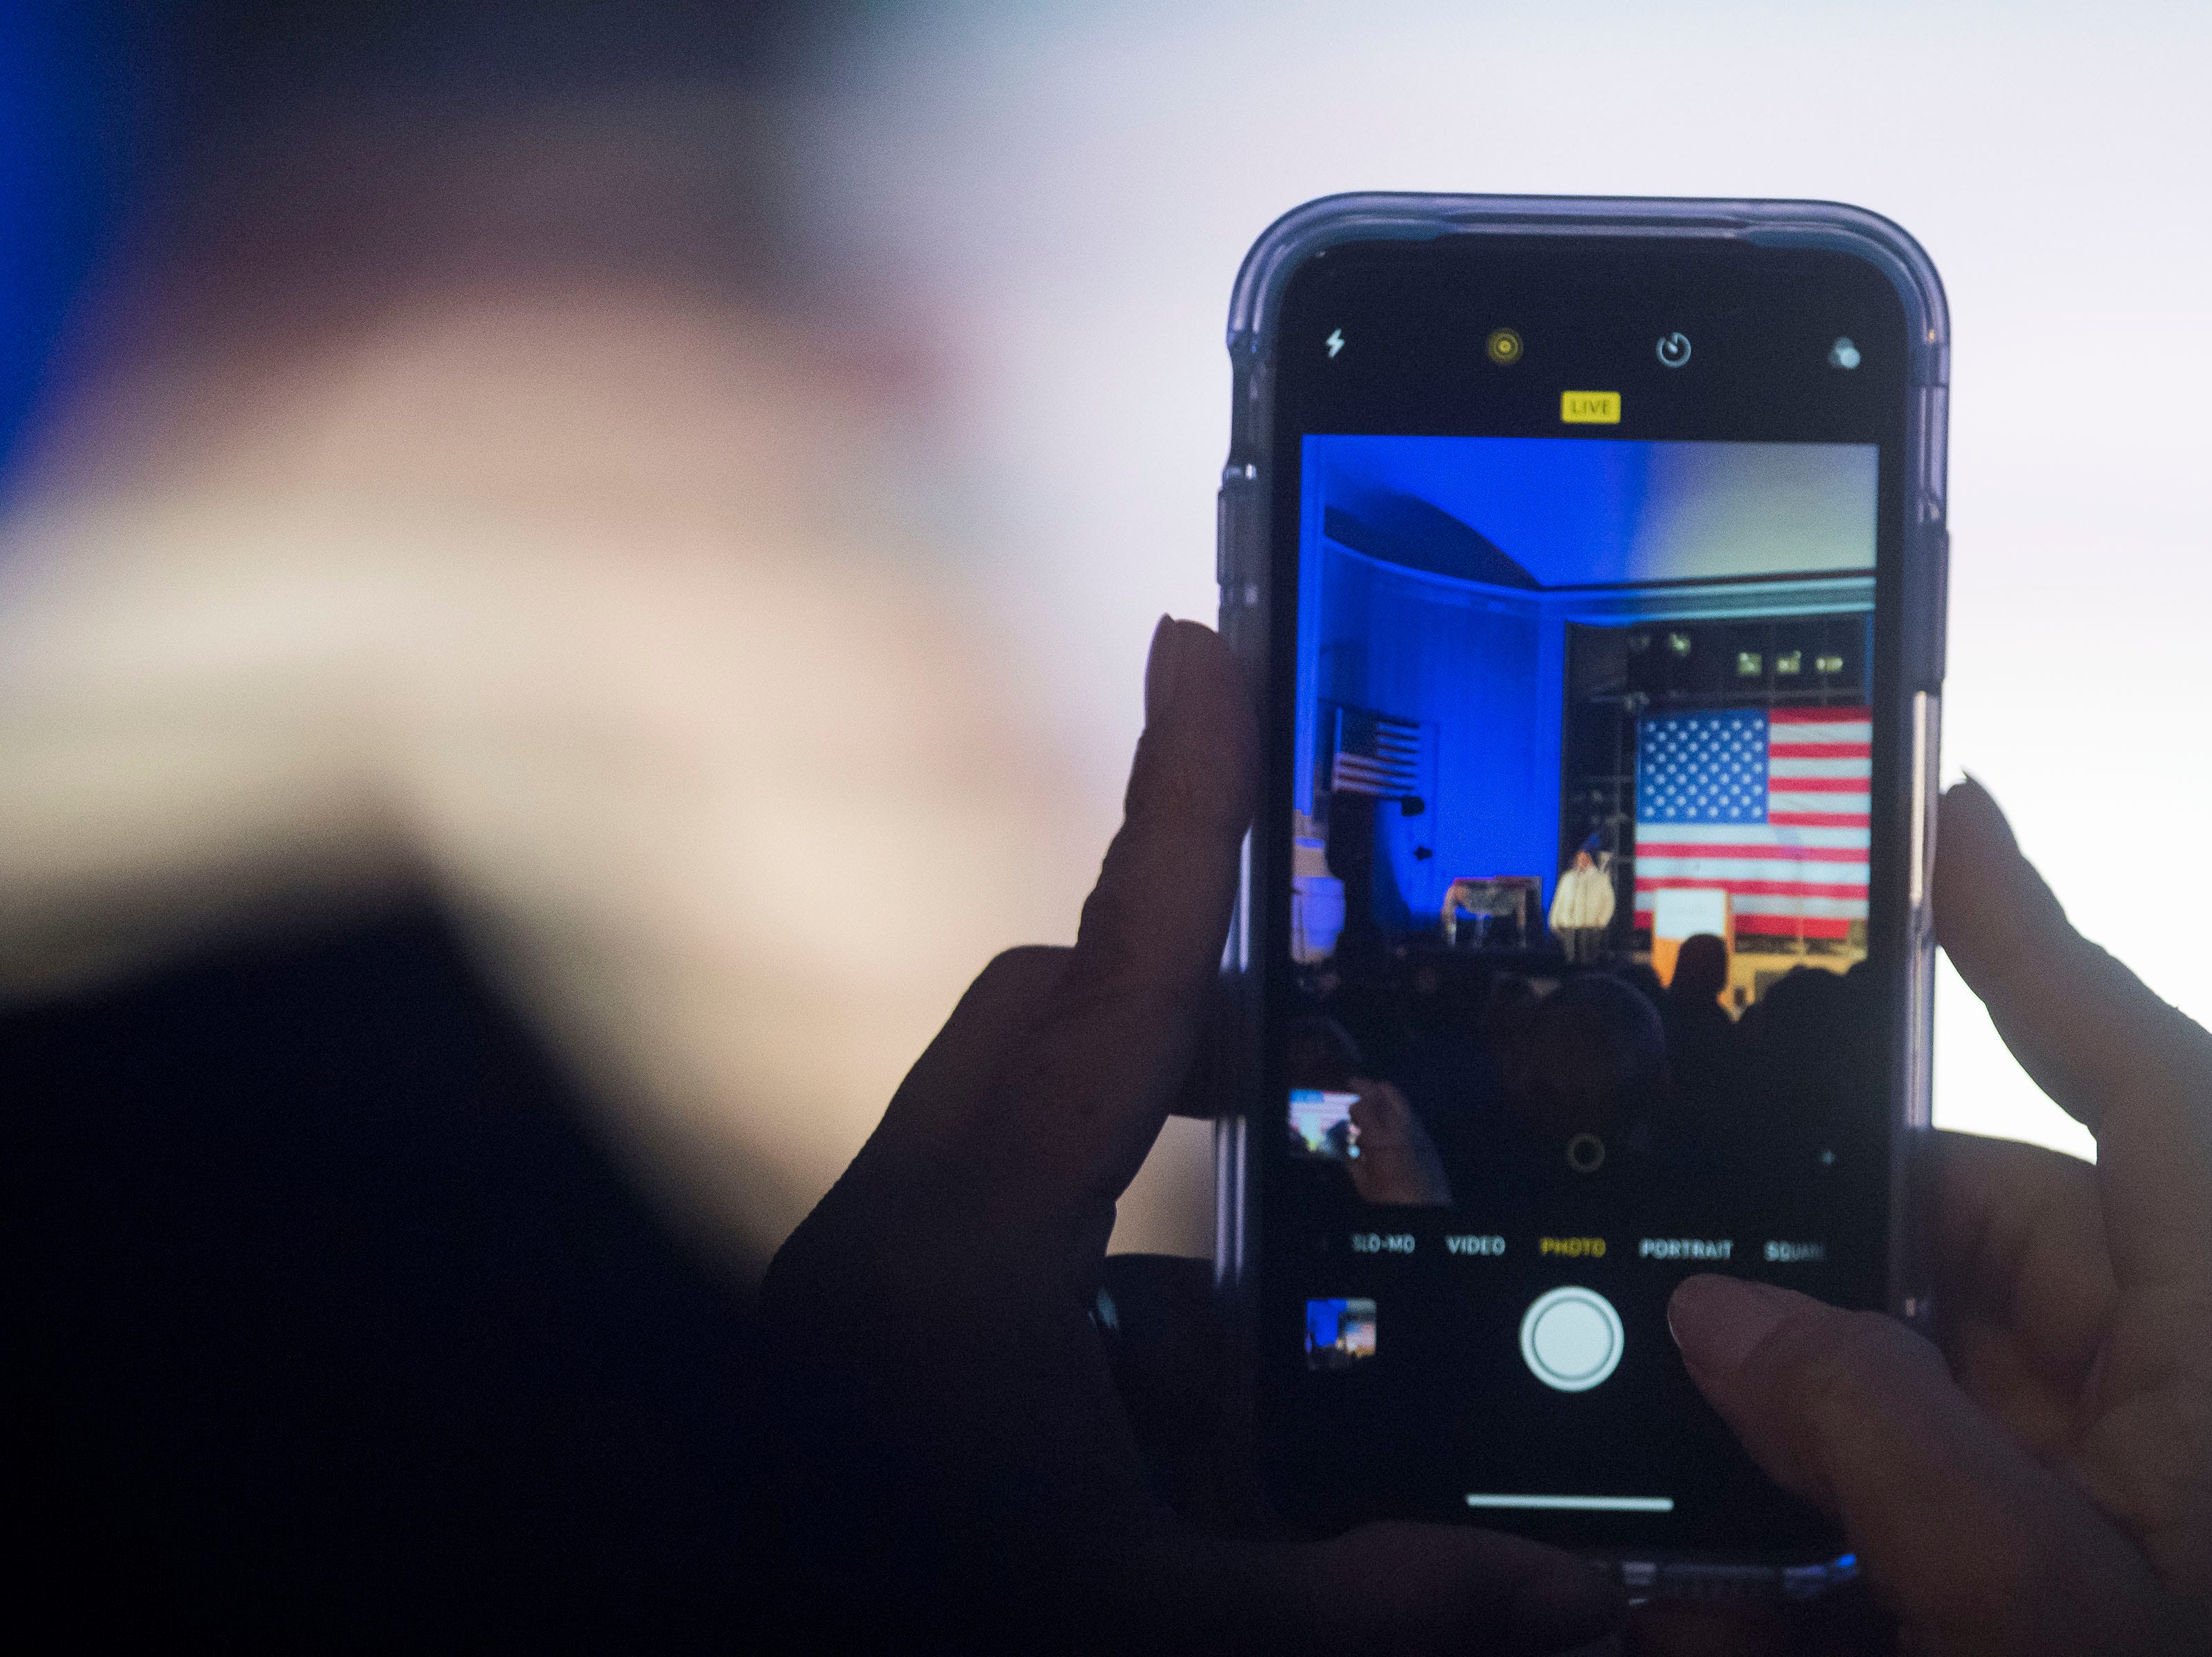 A rally participant takes video of the stage at the John Hickenlooper presidential campaign kick-off rally on Thursday, March 7, 2019, at the Greek Ampitheatre in Civic Center Park in Denver, Colo.